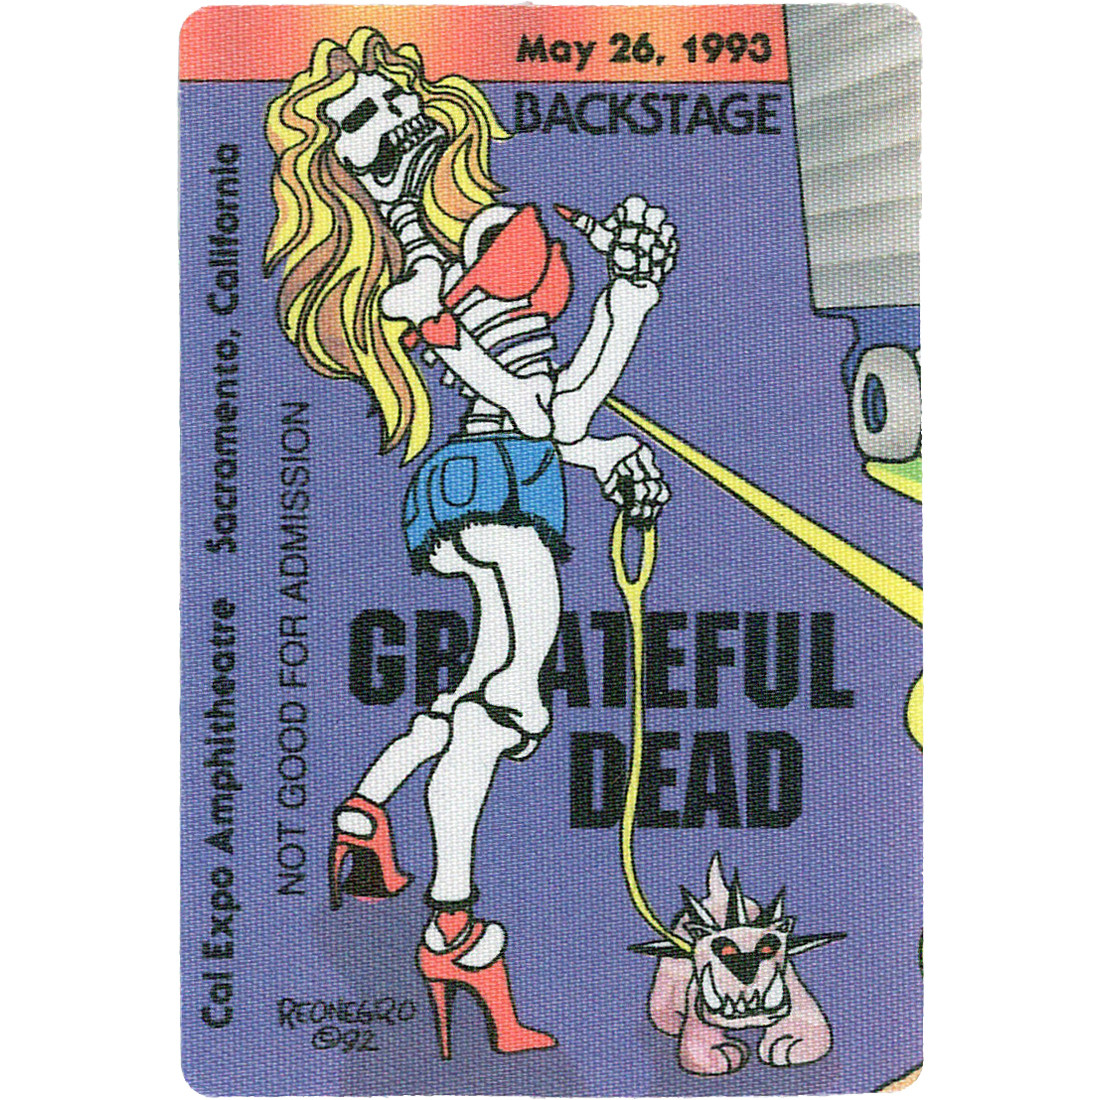 Grateful Dead 1993 05-26 Backstage Pass